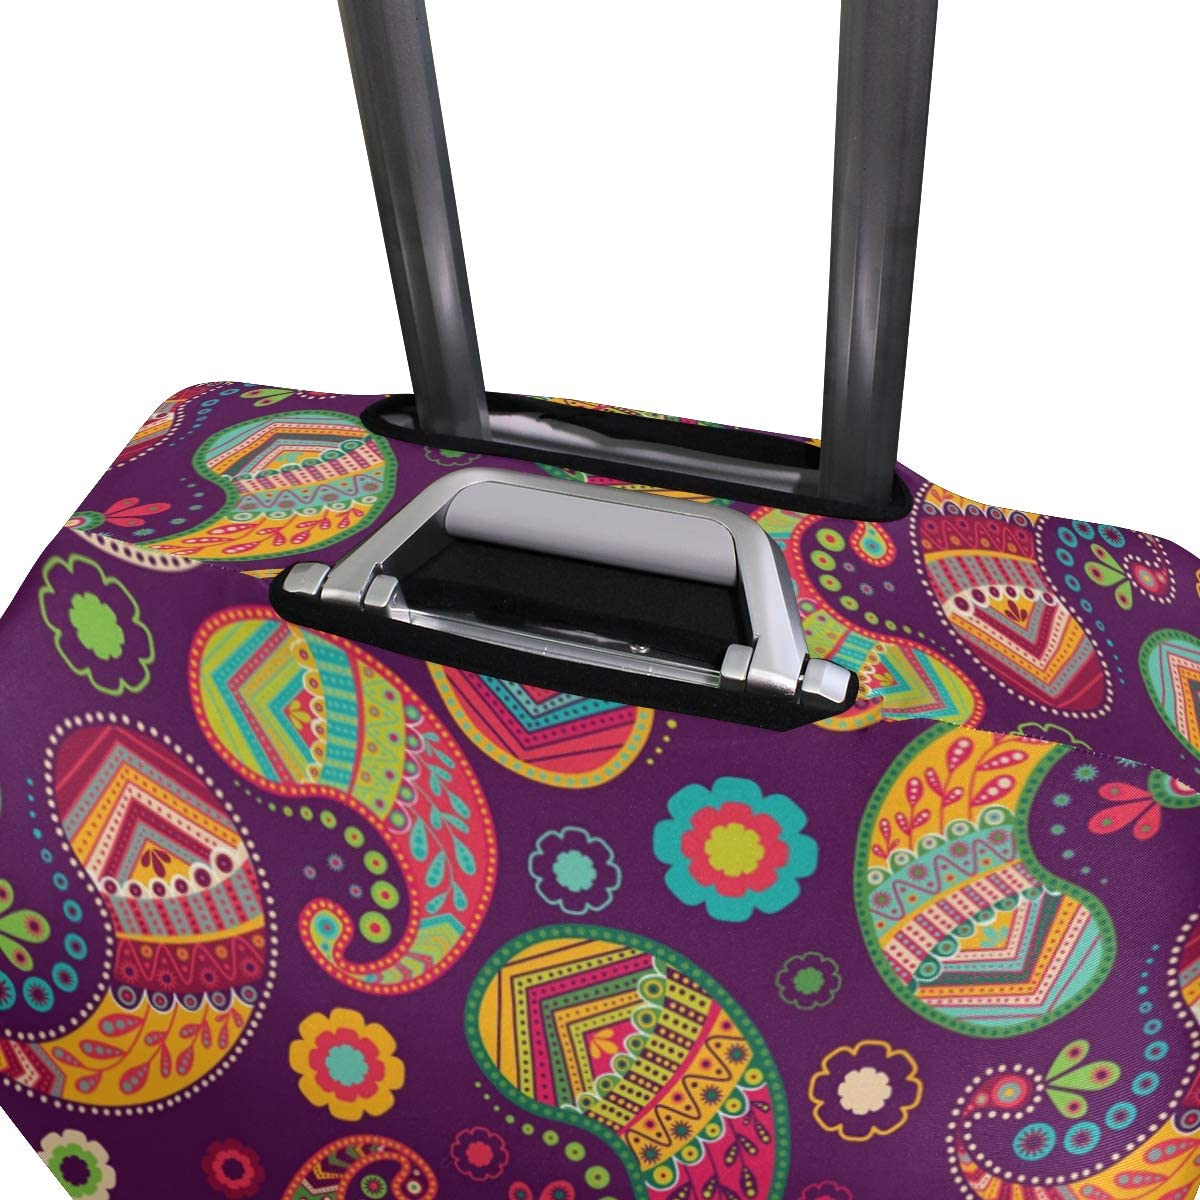 Blue Viper Colorful Elegant Beautiful Paisley Luggage Protective Cover Suitcase Protector Fits 22-24 Inch Luggage